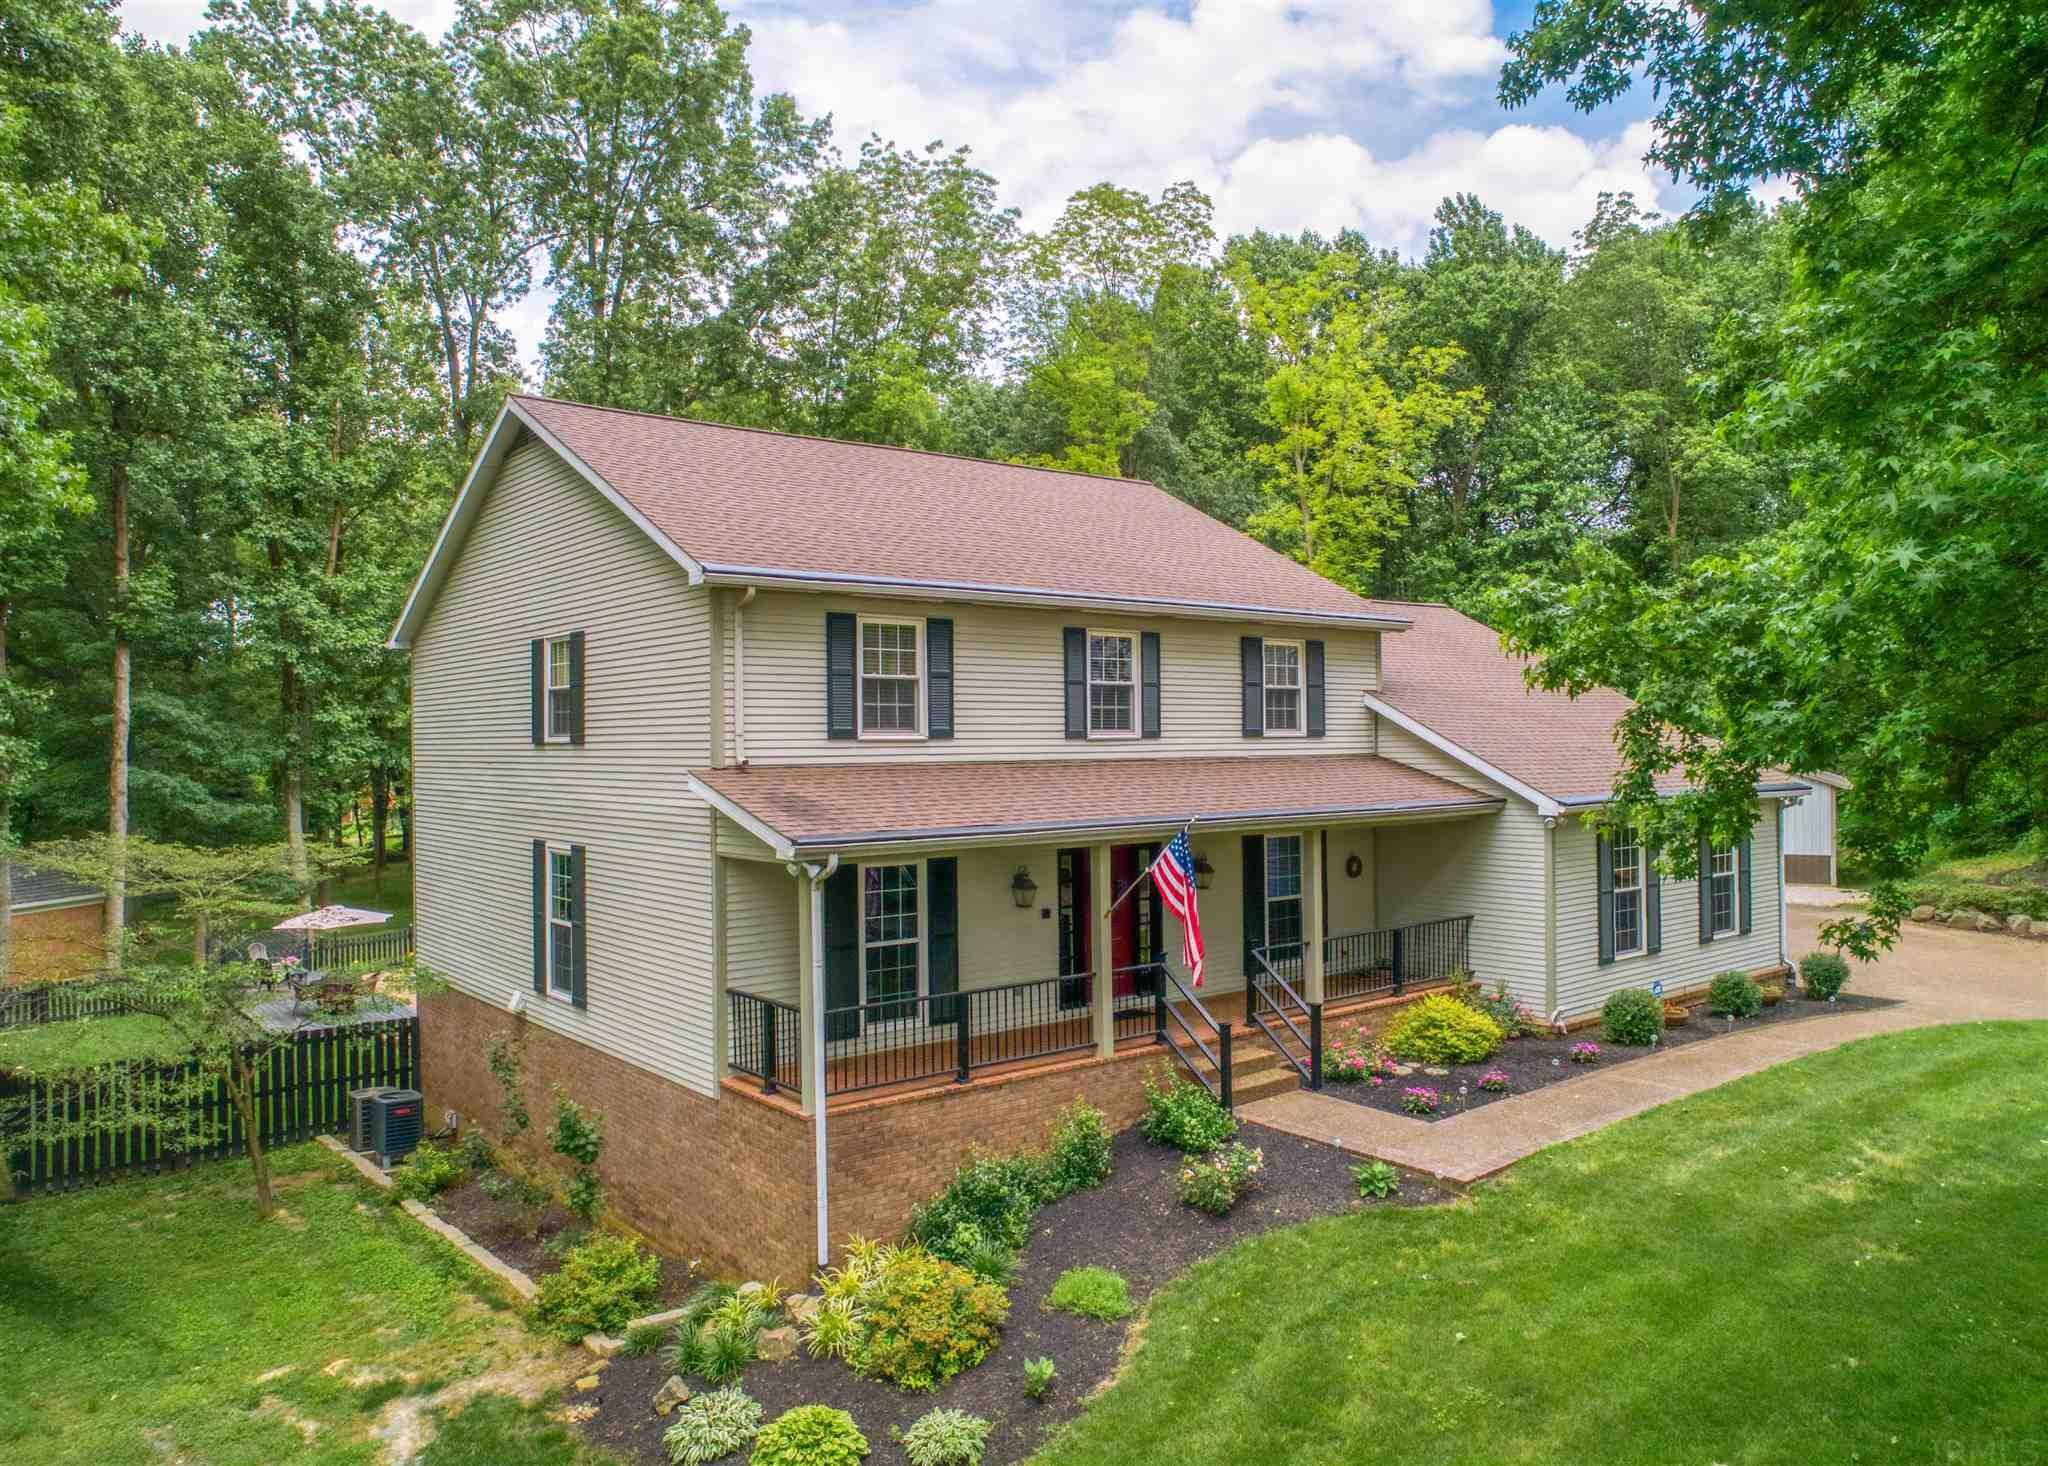 A long circle driveway leads up to this unique modern colonial inspired two story. The front door opens up to a large brick floored foyer with hall closet and staircase.  A Formal living room is off to the left with attached dining room that has crown molding and hardwood floors that flow through both into the kitchen.  Wood beams draw your eye upwards to the ceiling as you enter the kitchen. The kitchen is outfitted with rustic features such as brick accent wall with built-in counter top, black cabinets, large island with cook top, double ovens, planning desk and granite counter tops.  there is also space for a table with a view of the pool area outside.  Off of the kitchen is a family room with wood burning fireplace, built-in shelves and French doors leading out to the screened in porch overlooking the tranquil backyard.  The main floor laundry is huge with 2 walls of cabinets, granite counter tops, wash sink and walk-in pantry.  Upstairs the master bed room has new hardwood  flooring, crown molding and an updated master bath with walk in closet.  There are 3 more bedrooms on the upper level as well as an office or bonus  and a shared full bath.  The finished walk-out basement is spacious and open with a remolded full bath, kitchenette with new cabinets, sink and storage area.  The basement offers a built-in Sauna for your relaxation and enjoyment.  Outside is an in-ground pool with diving board, sun deck and upper deck that leads back into the screened in porch.  Finishing off this home is the  24 x 24 detached garage for additional parking or workshop.